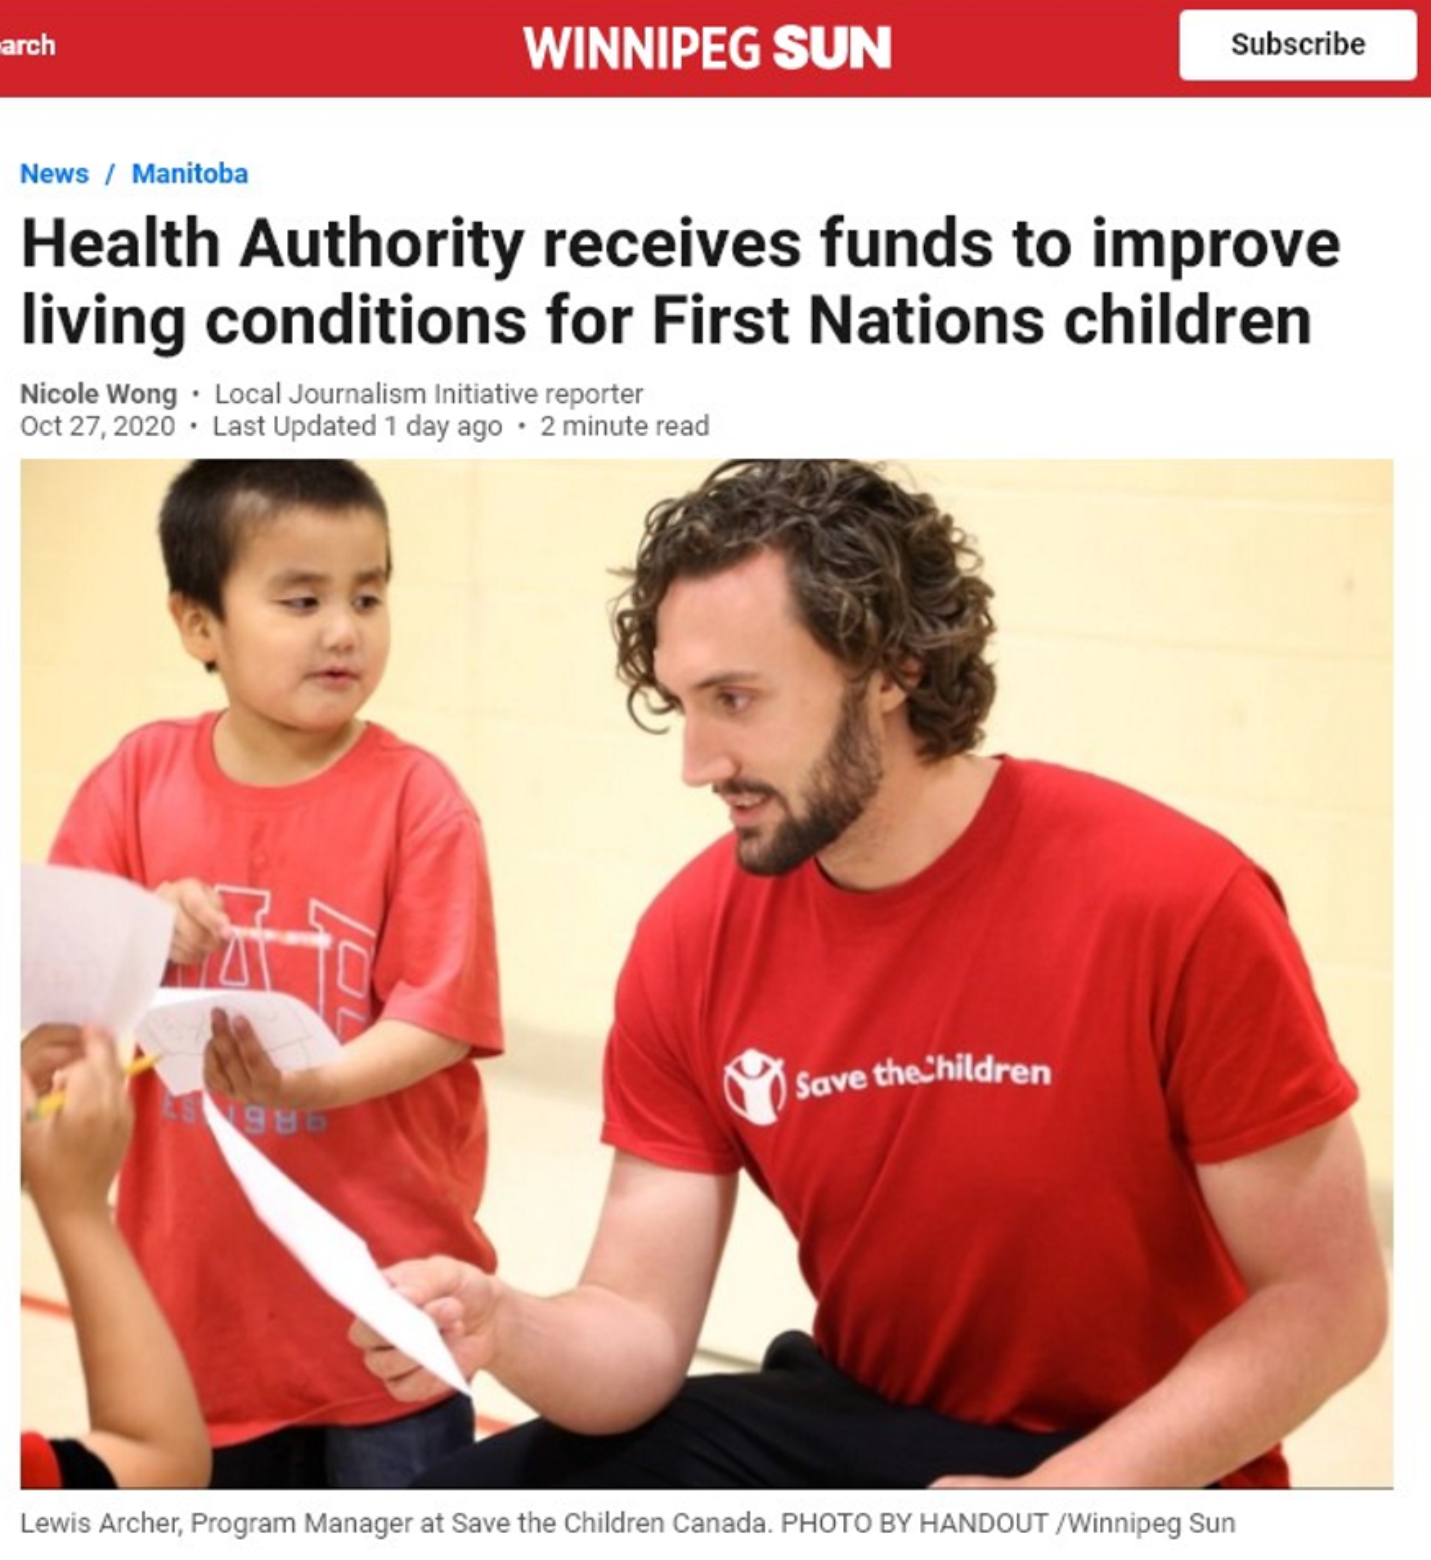 Health Authority receives funds to improve living conditions for First Nations children